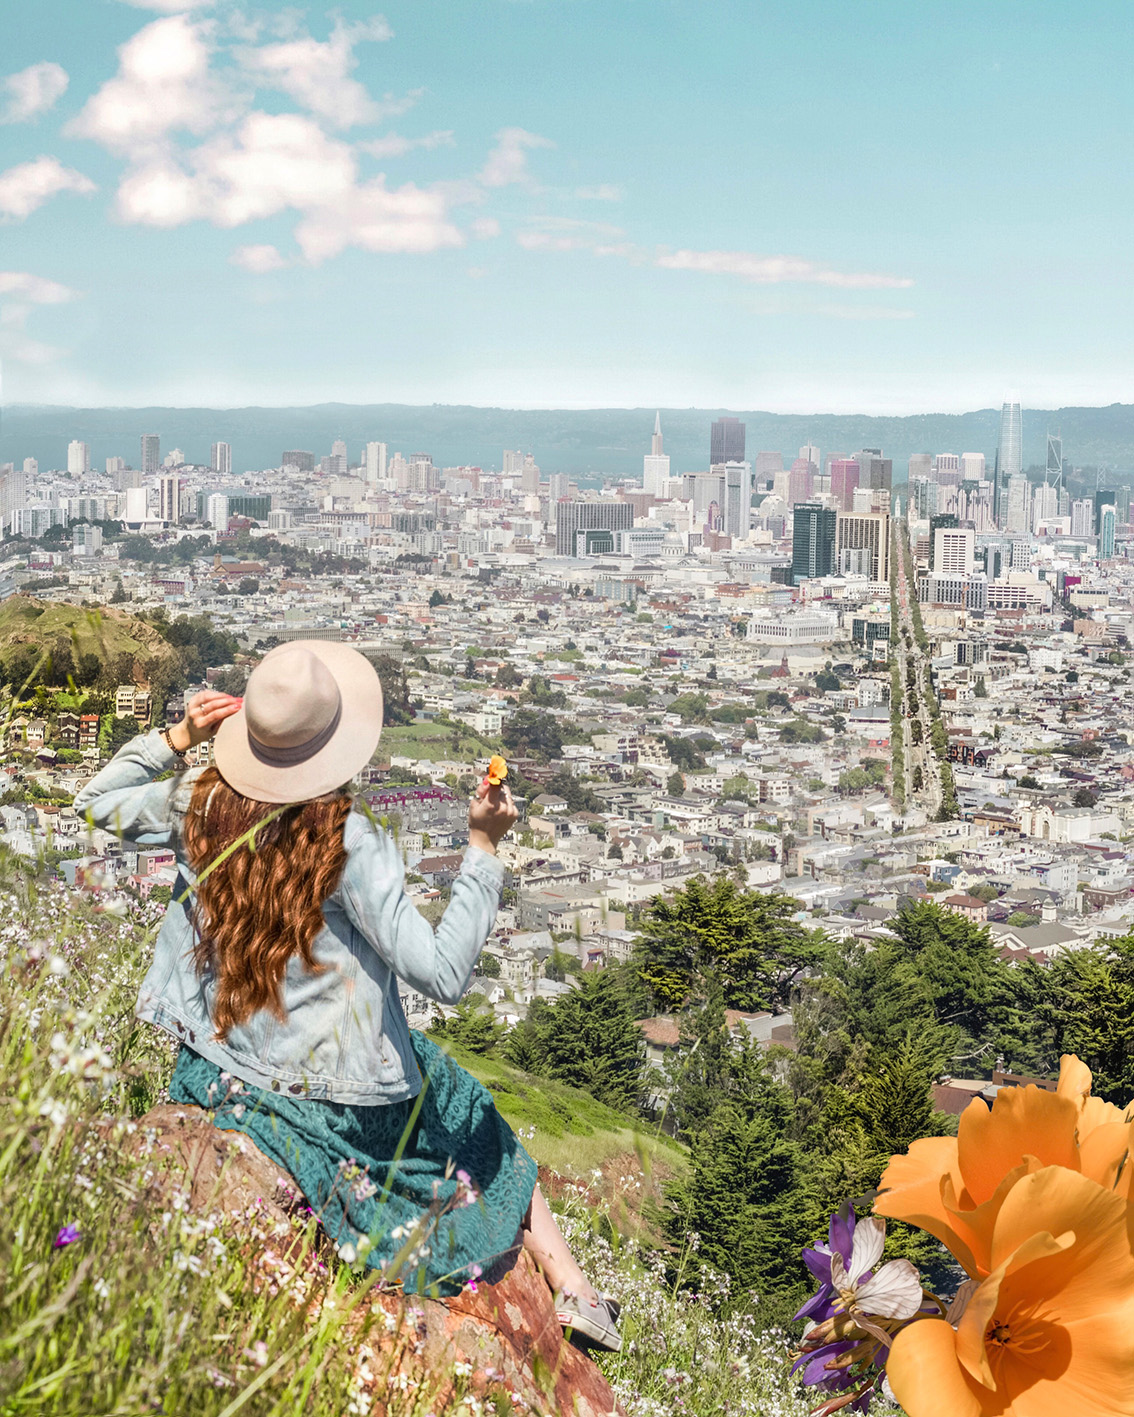 16 10 most instagrammable places in San Francisco you don't have to miss!